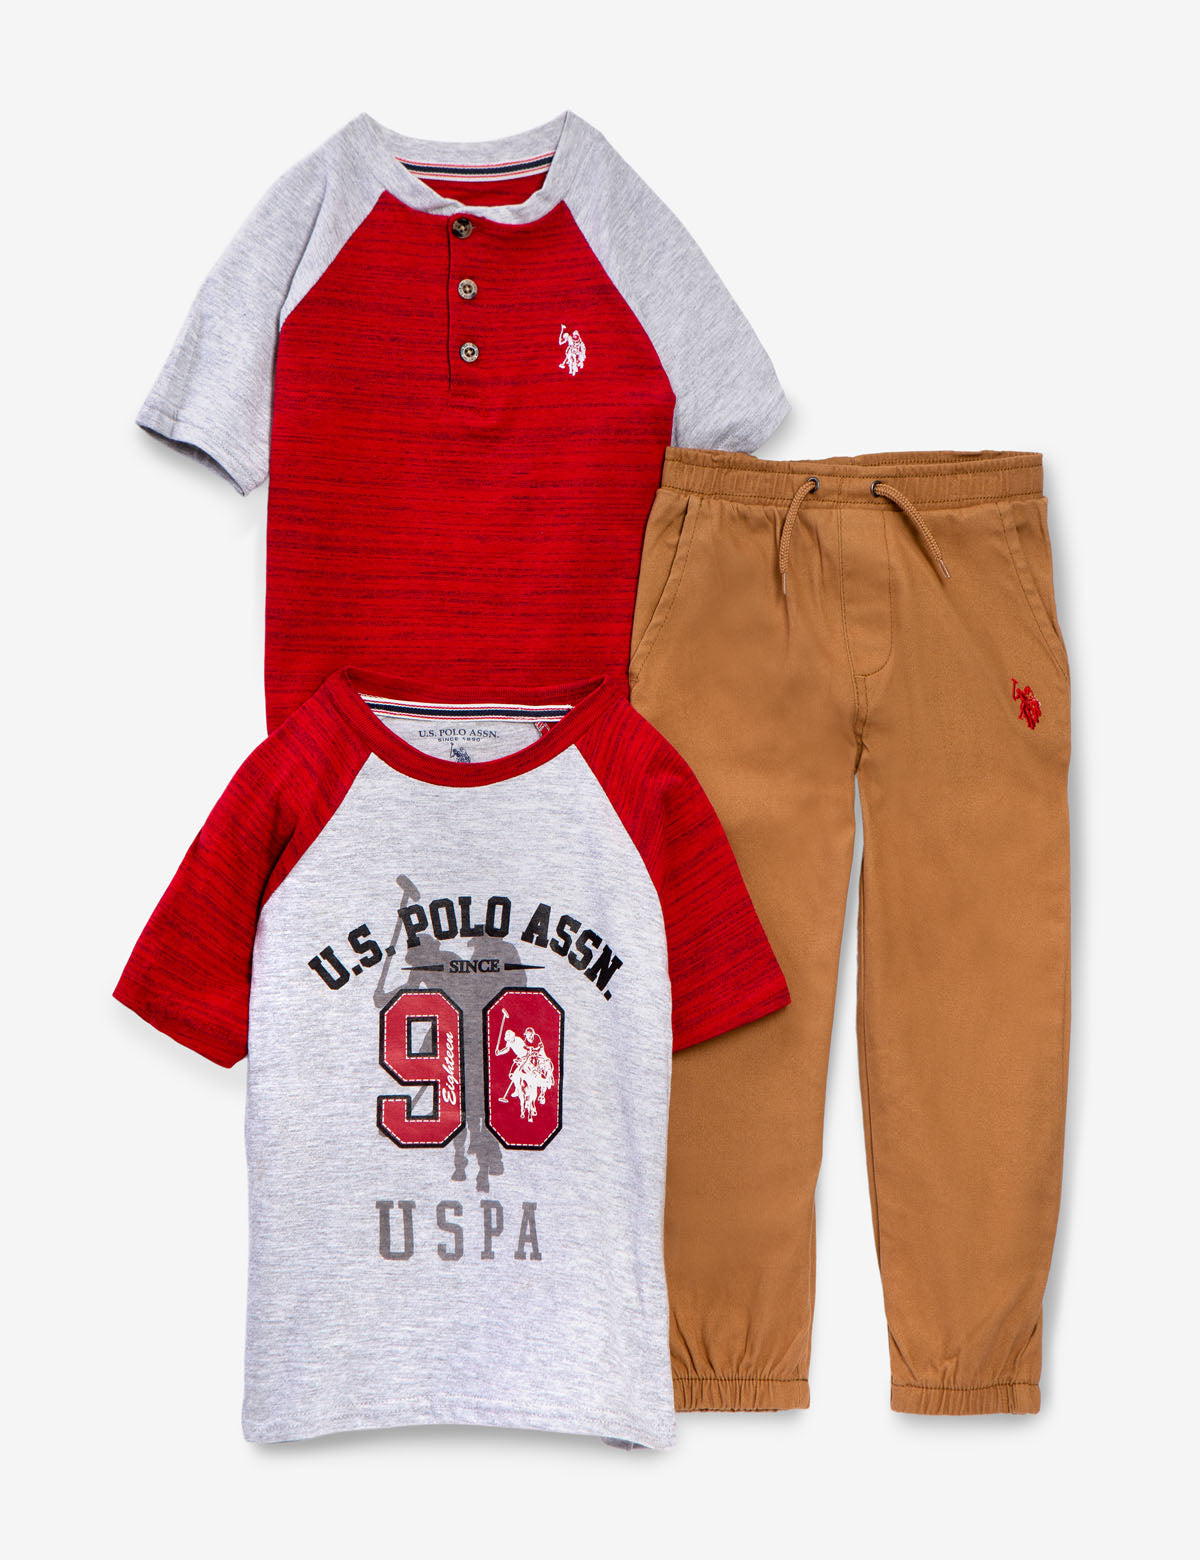 Polo Assn Boys Toddler Sport Shirt Sweater and Pant Set U.S